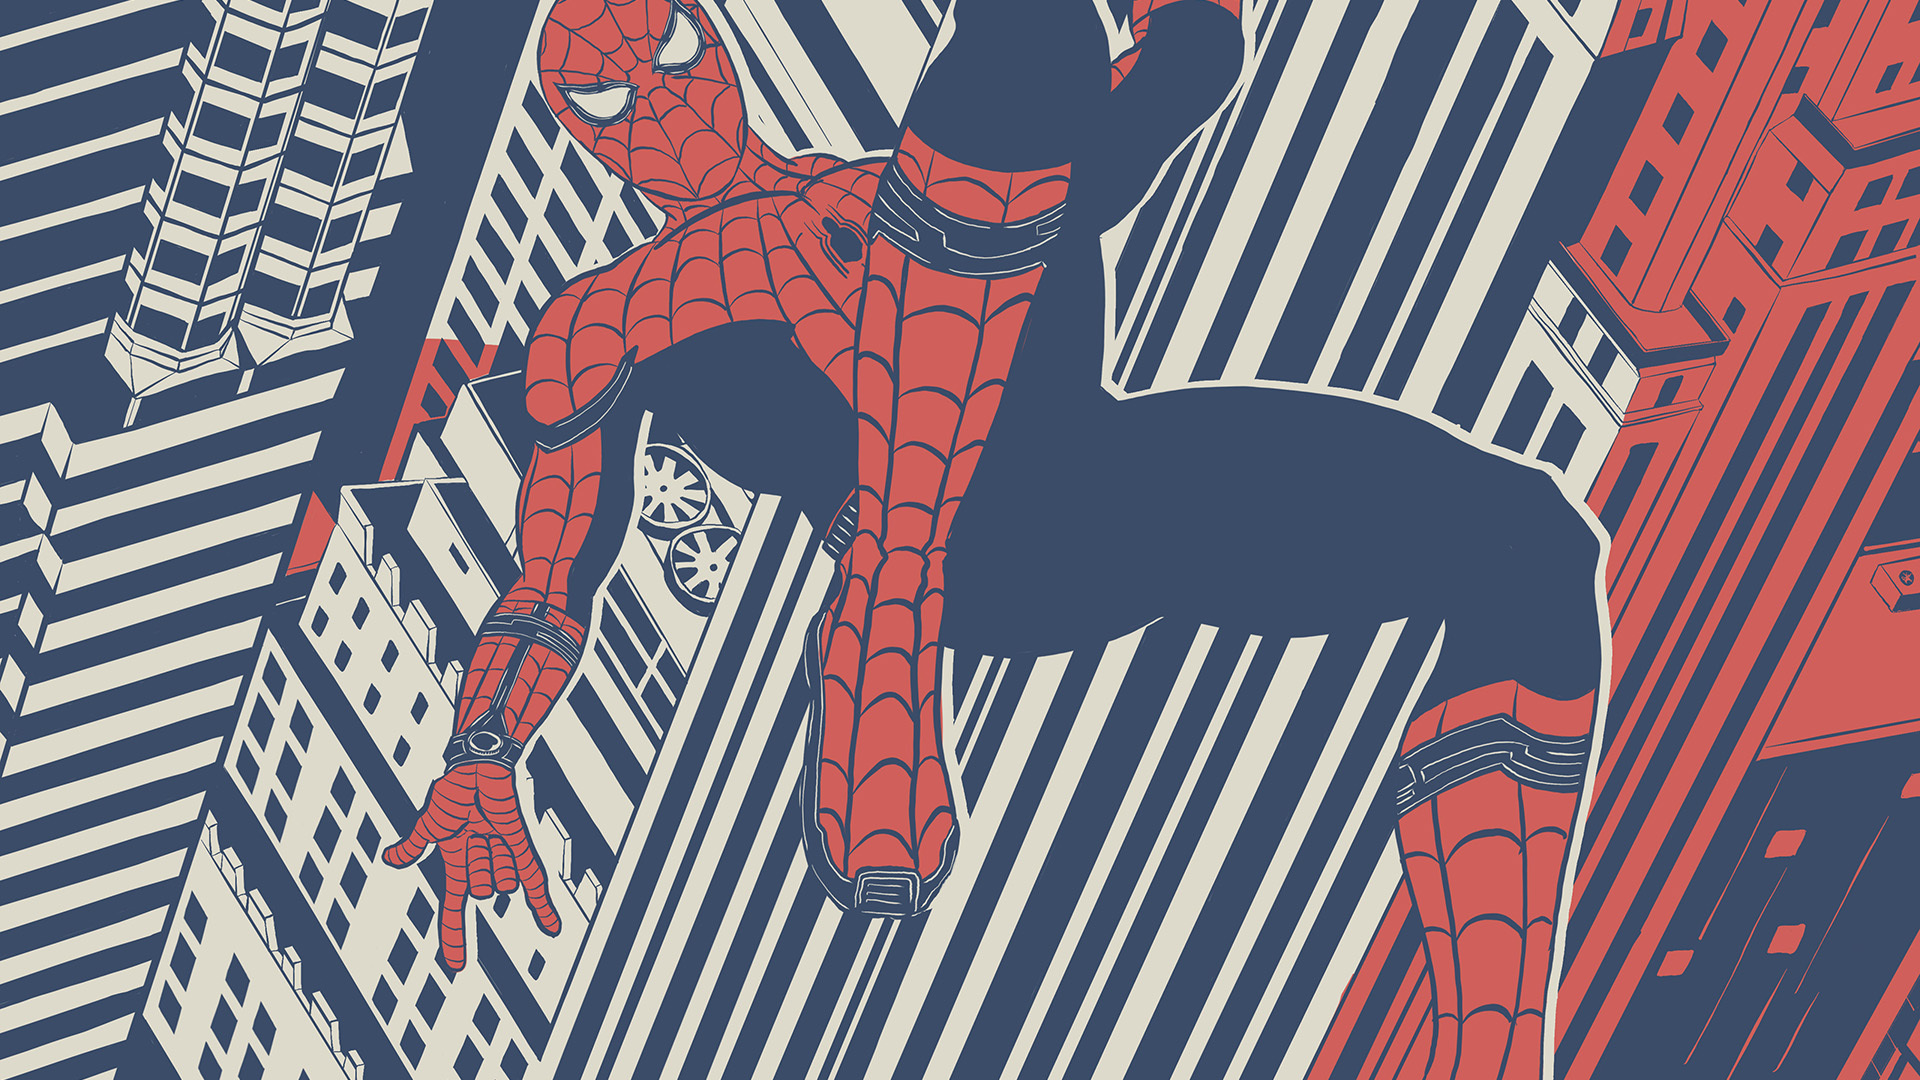 wallpaper for desktop, laptop | bf29-spiderman-hero ...